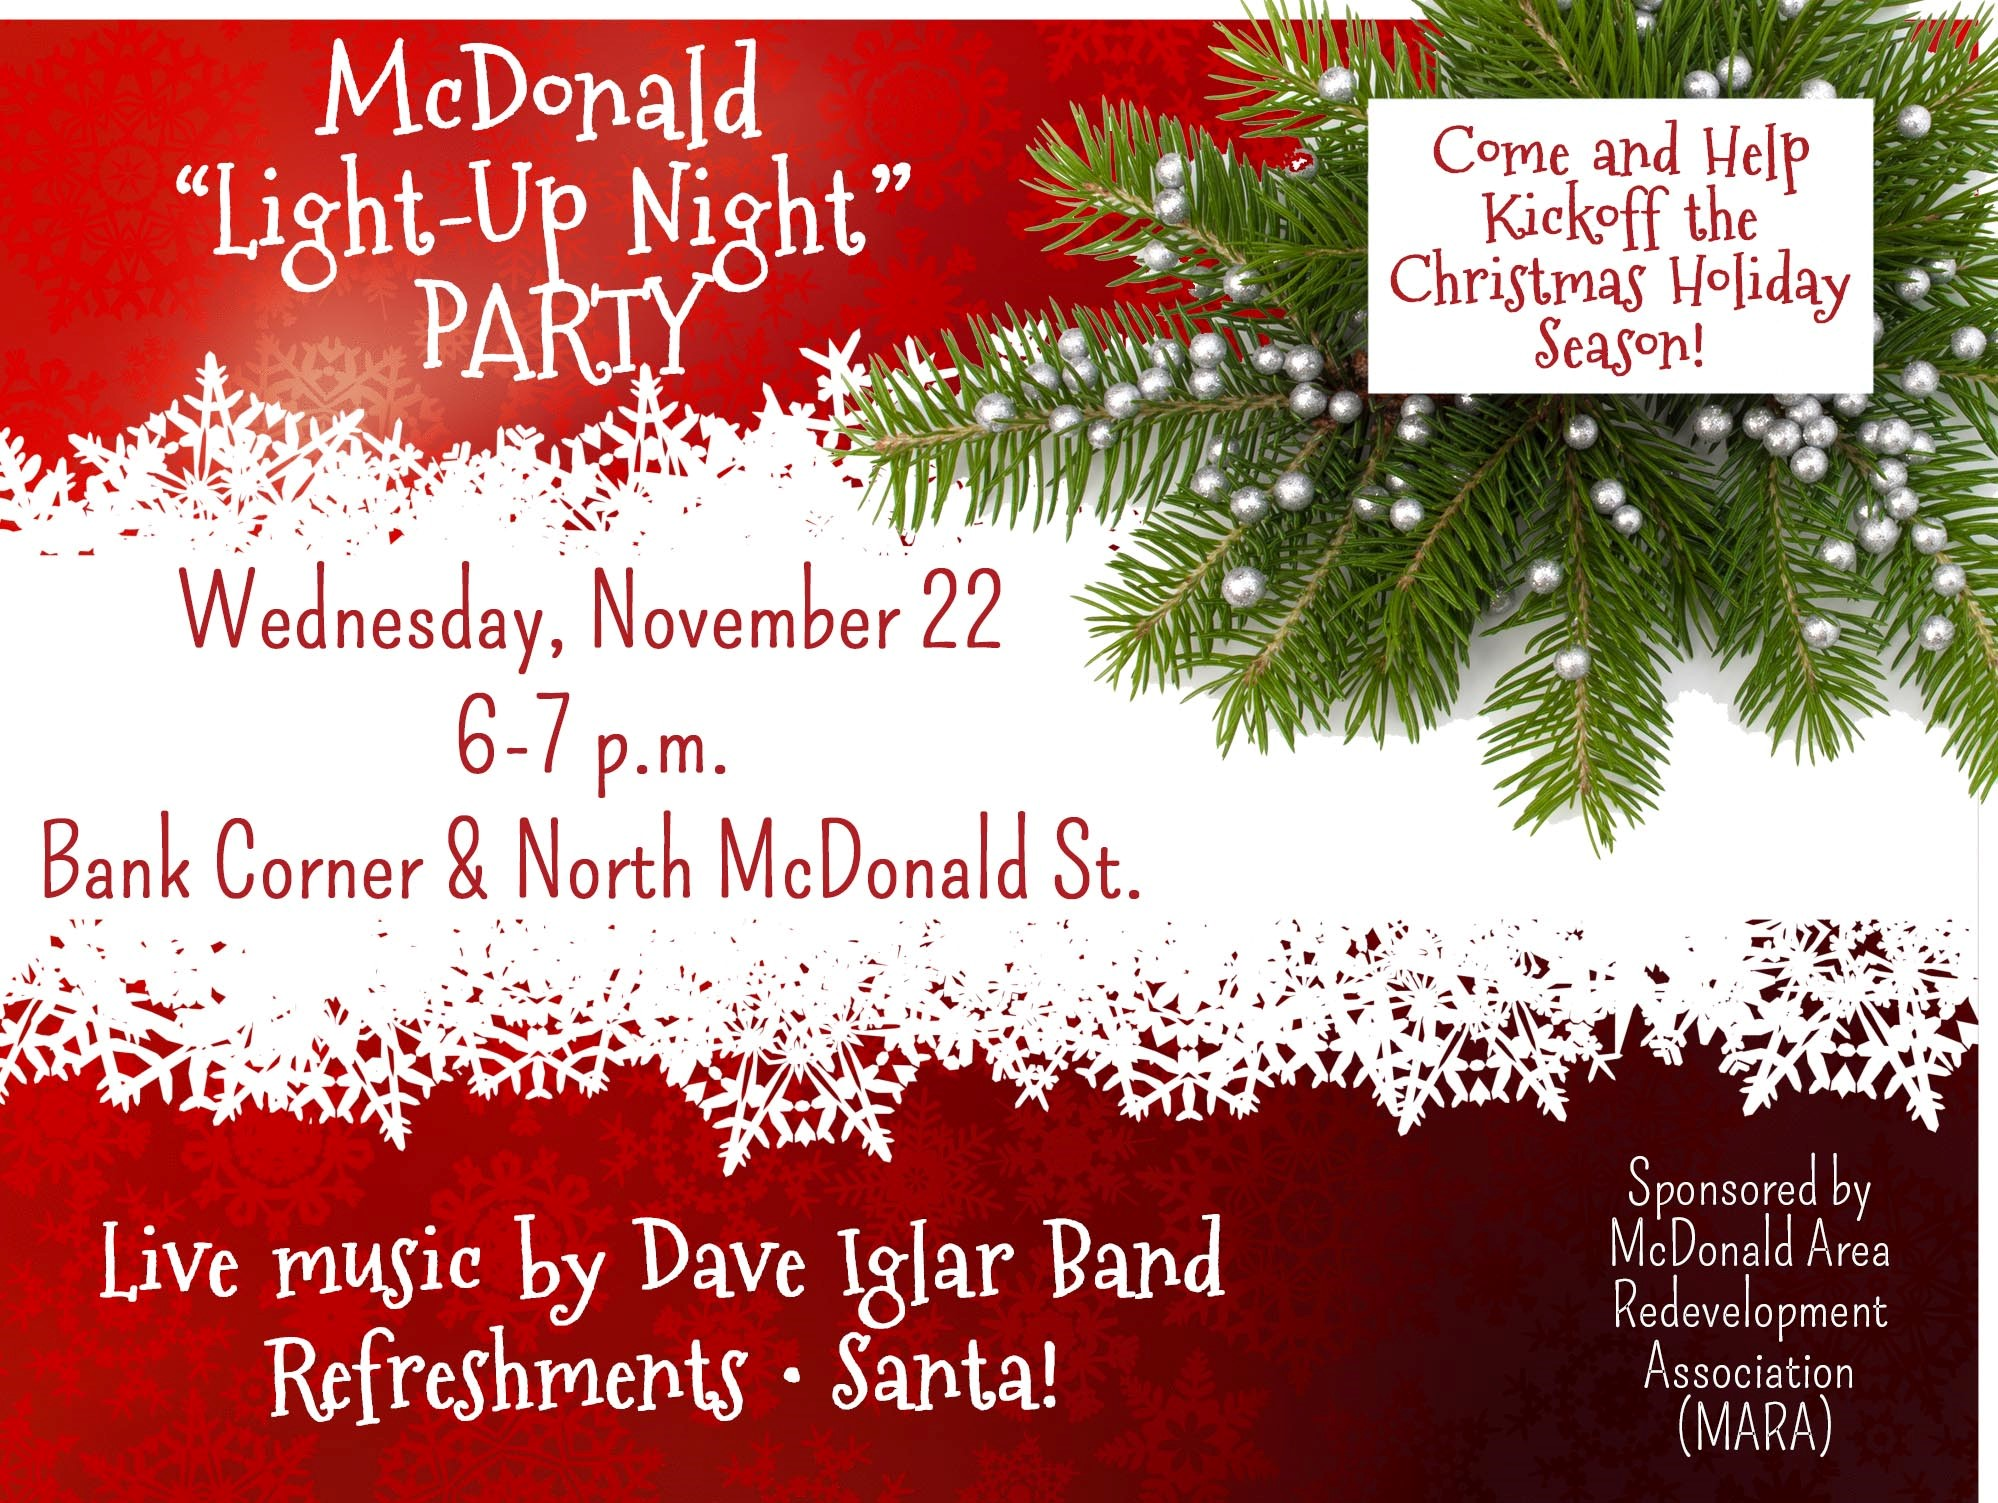 McDonald Light Up Night